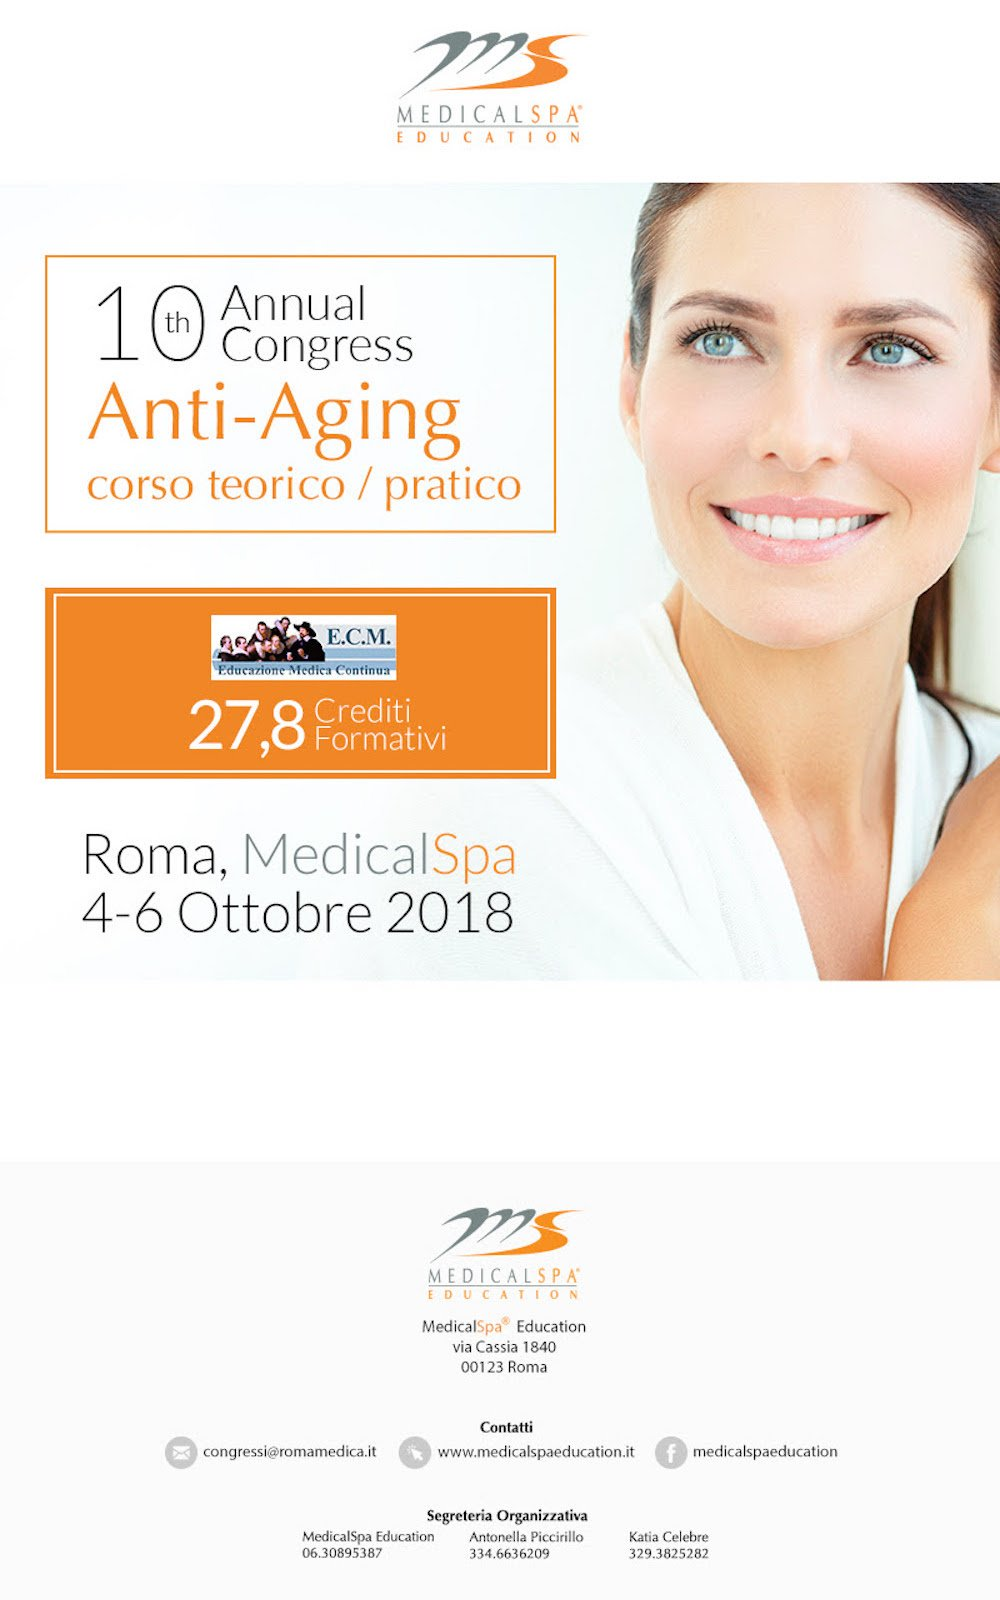 10th annual congress anti-aging medicalspa education - Dr. Luca Piovano - revised